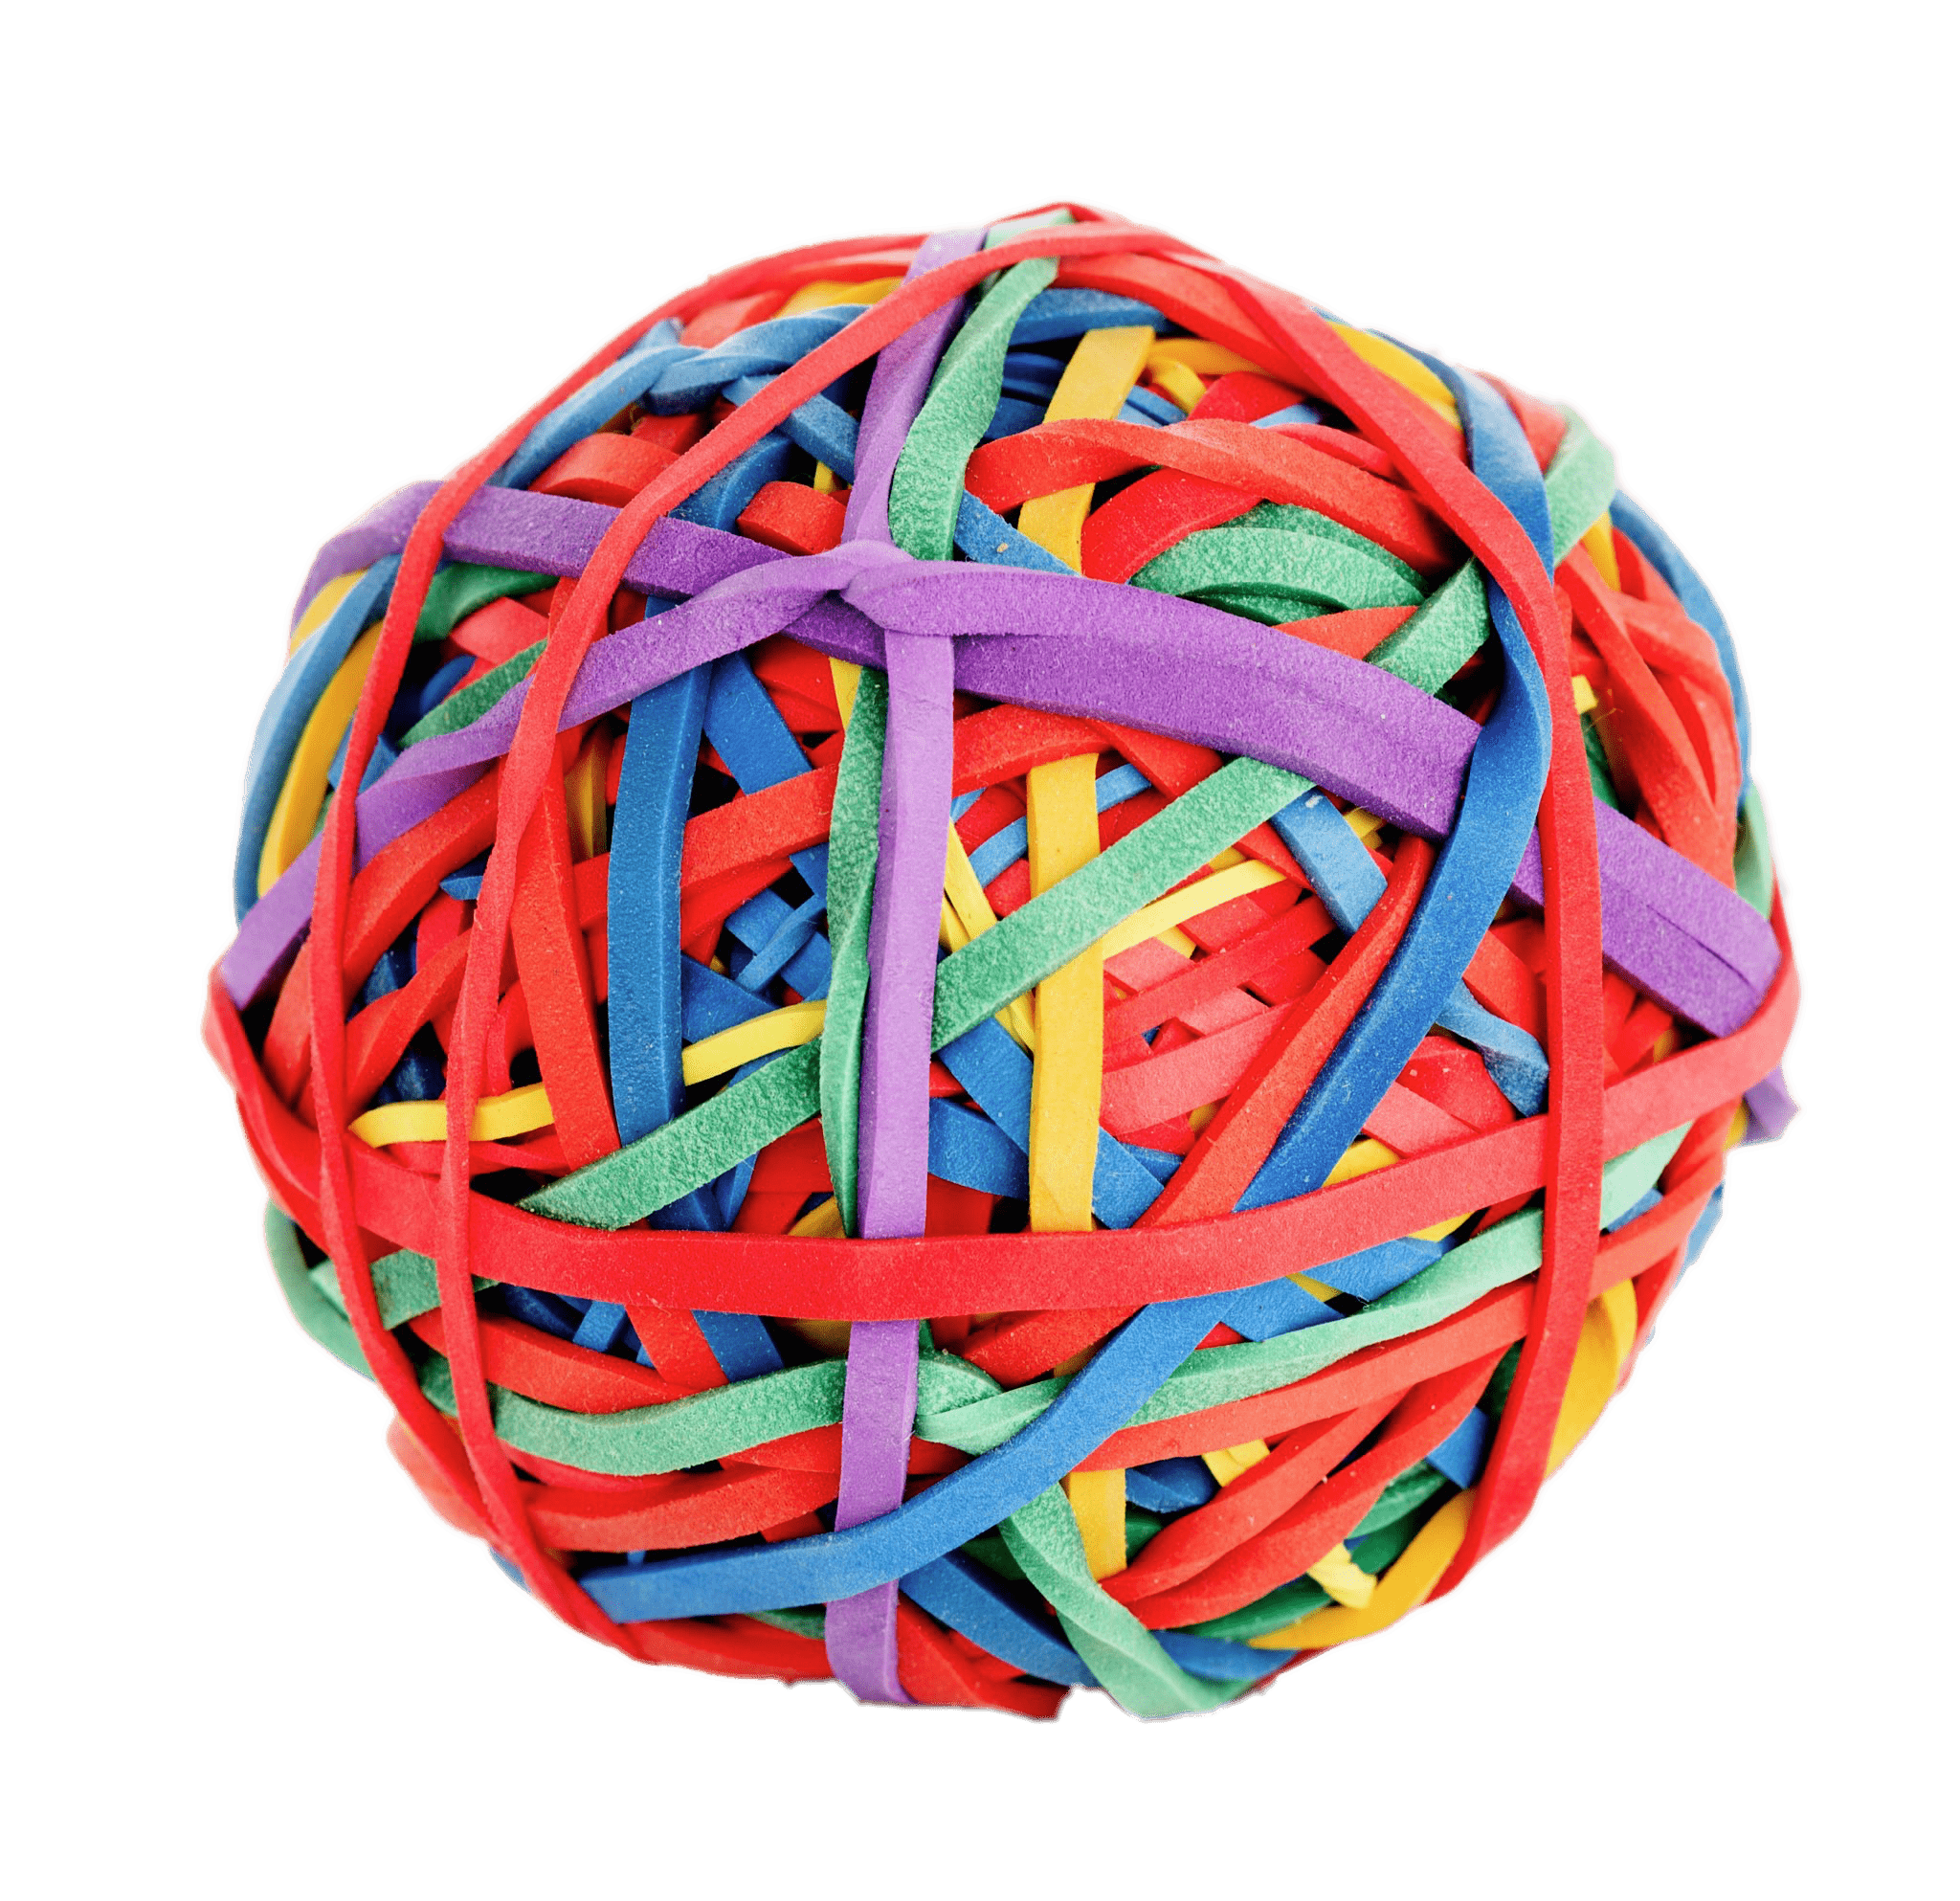 Ball Of Rubber Bands Transparent Png Stickpng